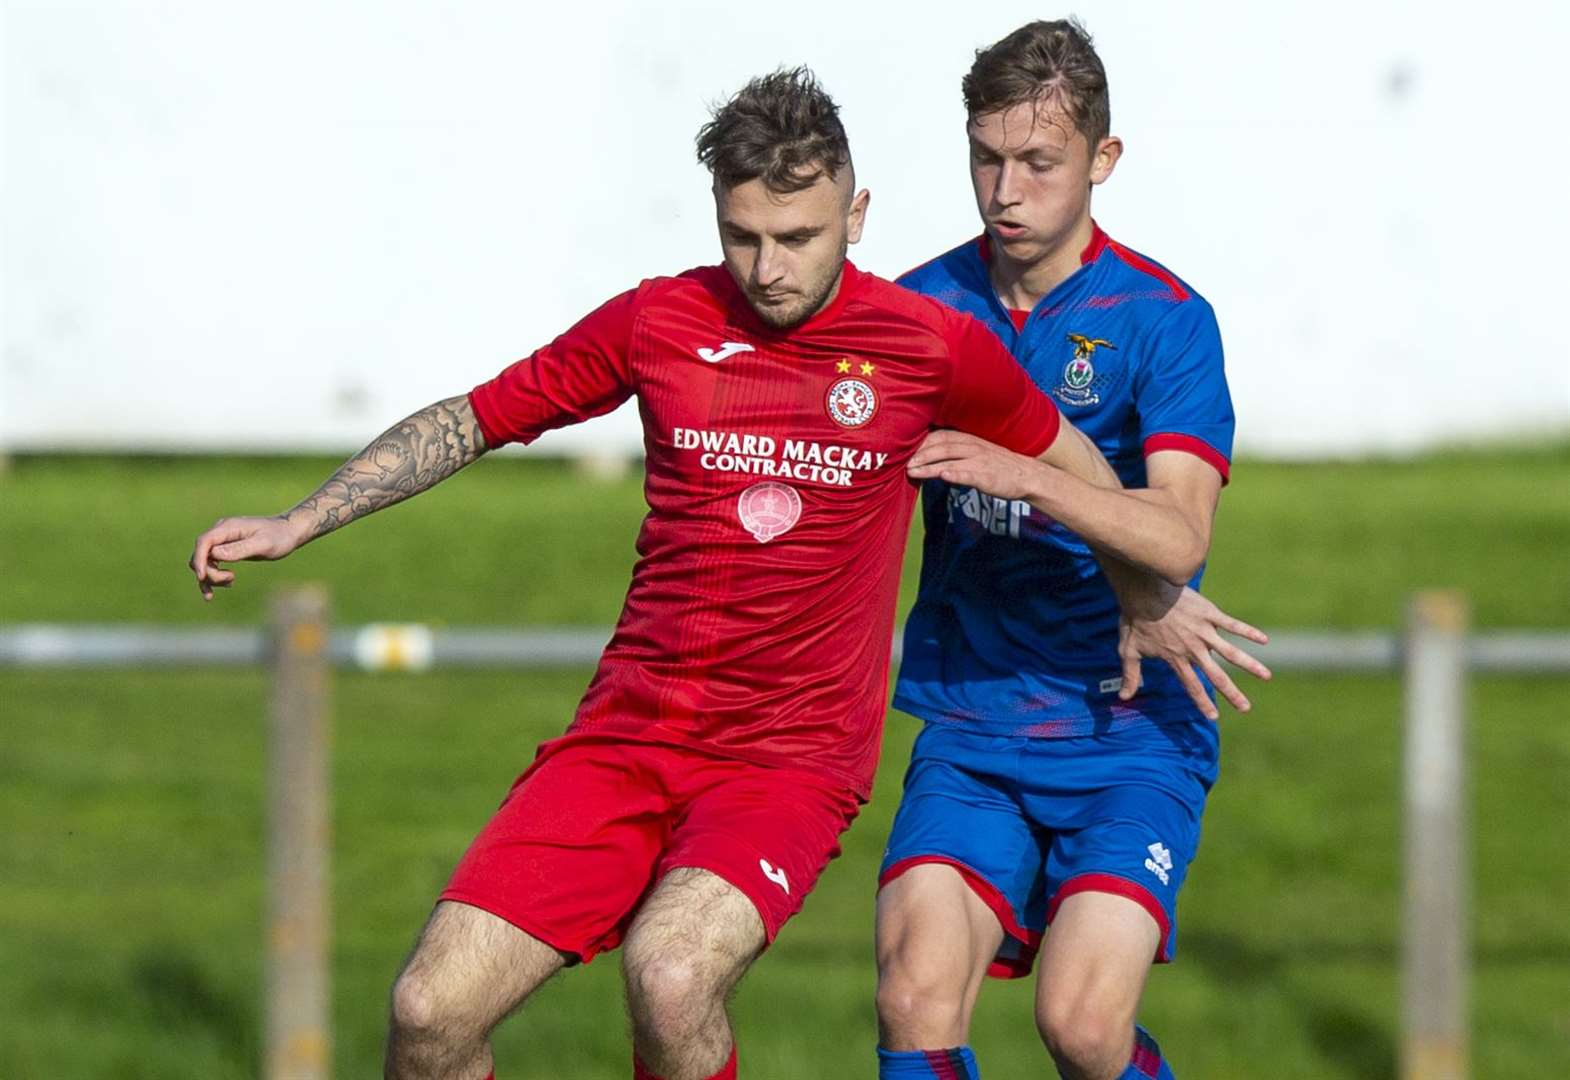 Seventh heaven for Brora Rangers who run riot in Scottish Cup